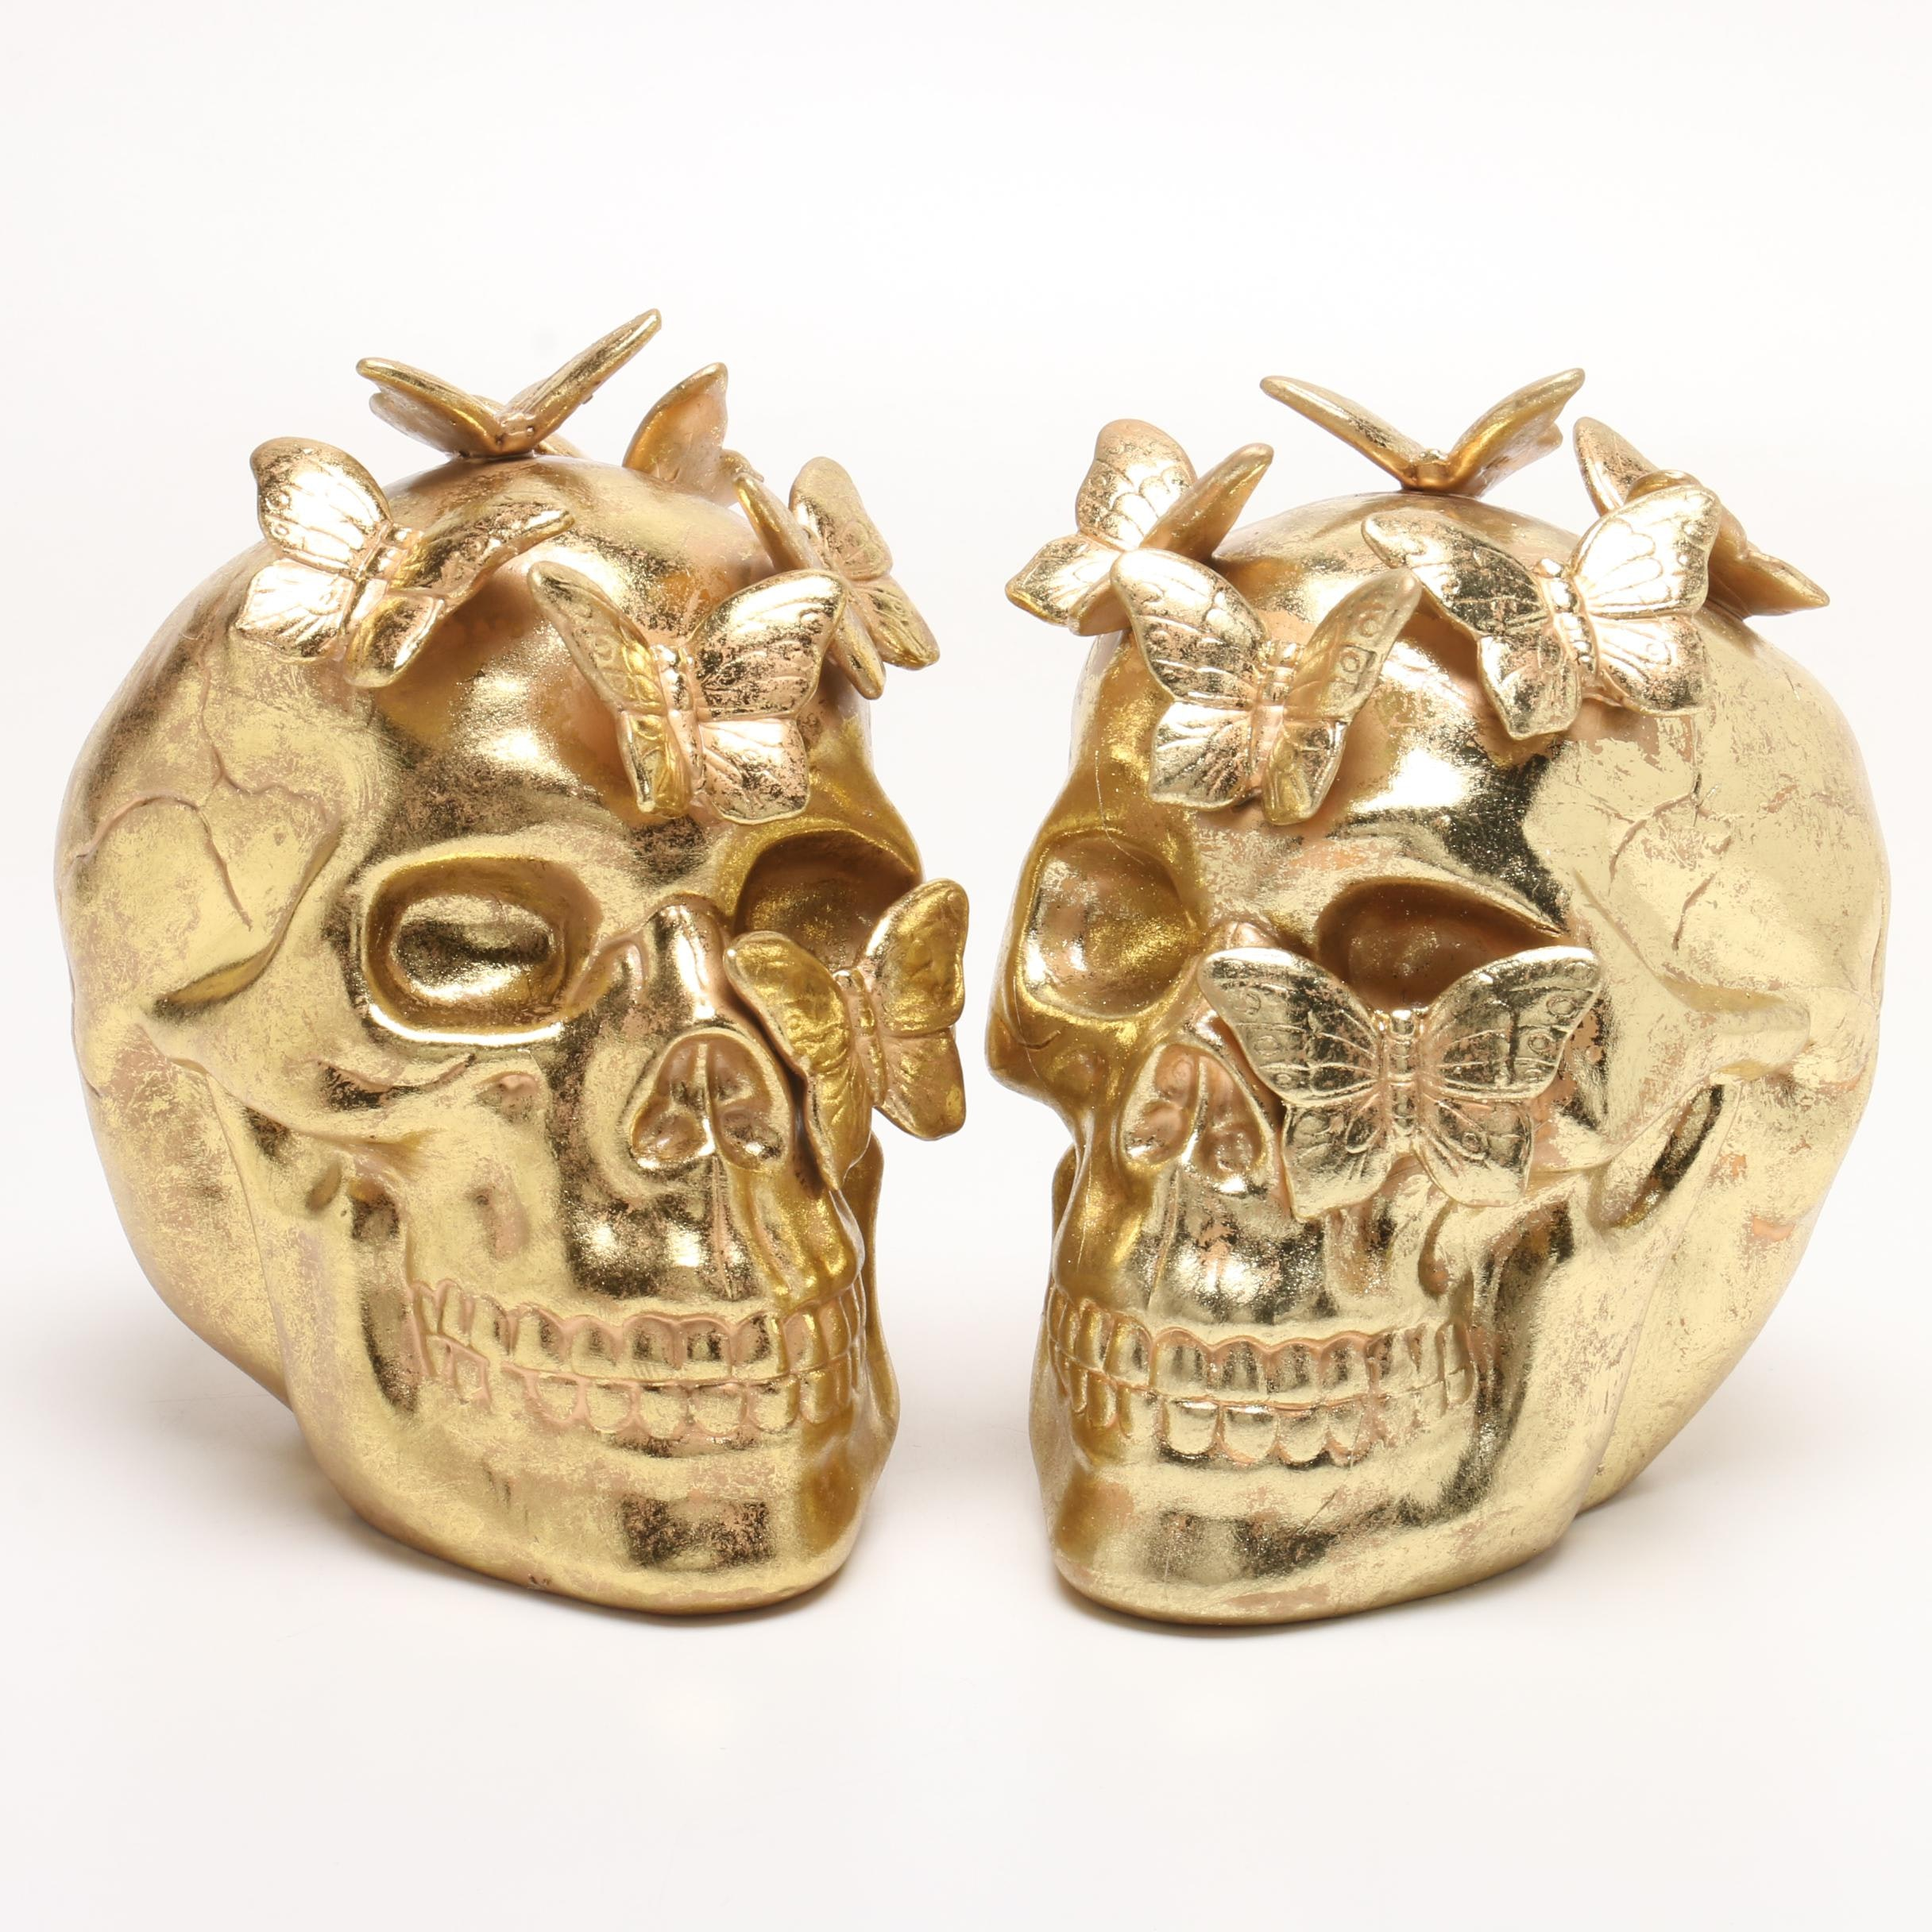 Pair of Ceramic Skull Decorations with Gold Tone Glitter Finish